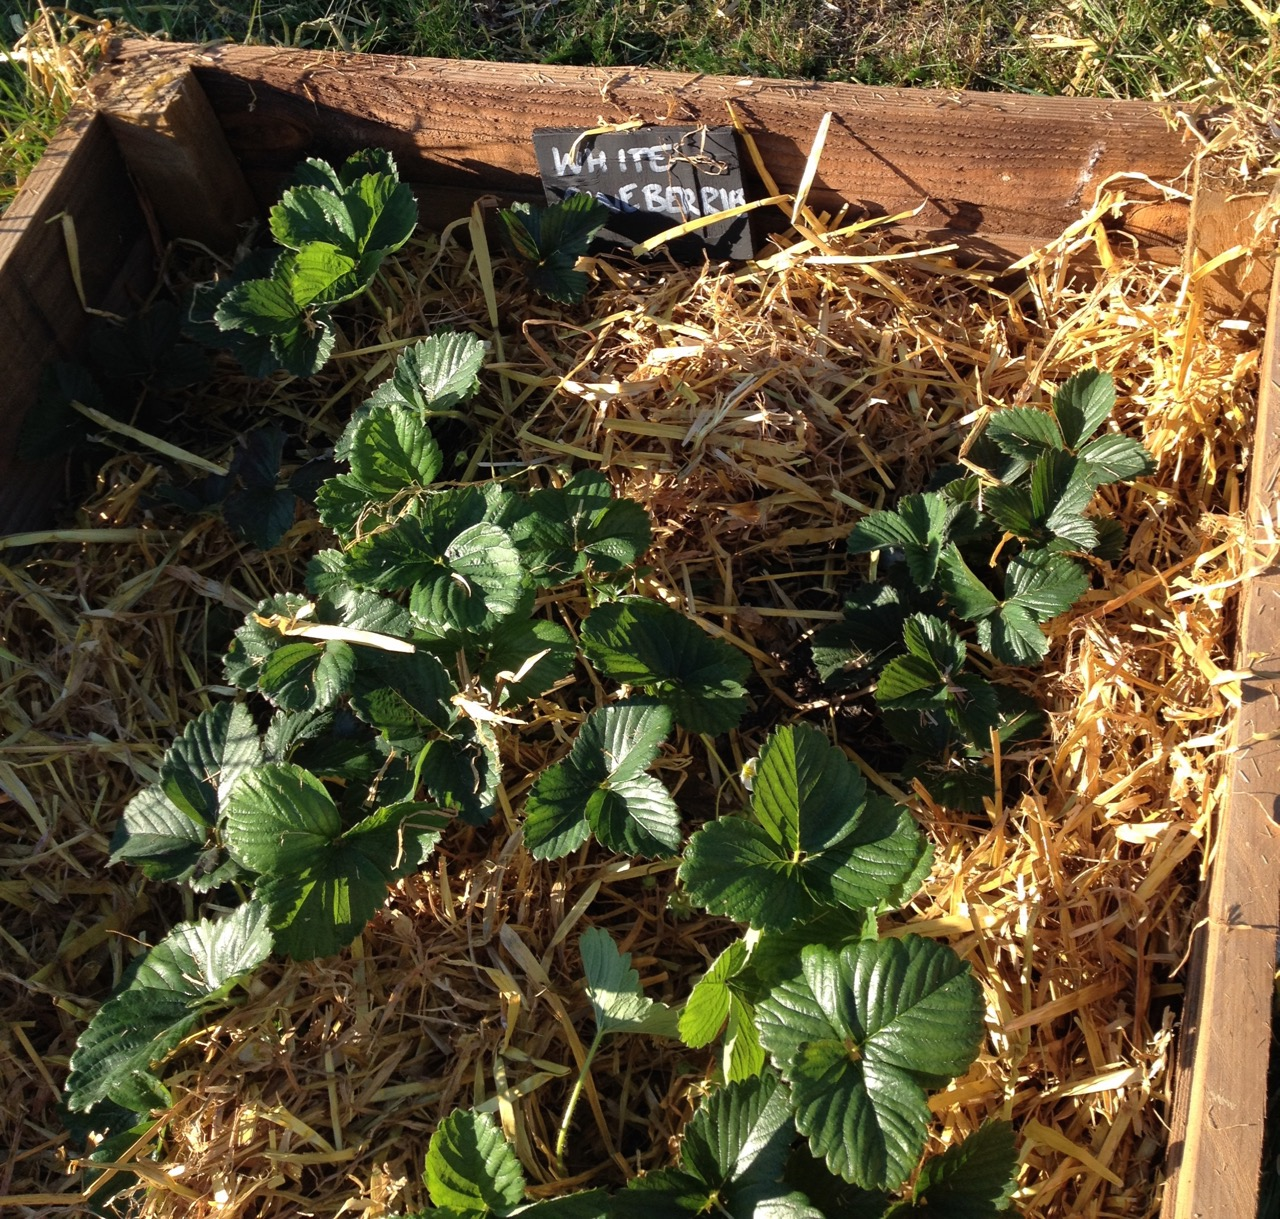 White  'Snow White' strawberries (pineberries), with their new mulch. They are just starting (eat them when they are slightly yellow and soft) but were very popular - they are sweet and have a hint pineapple.